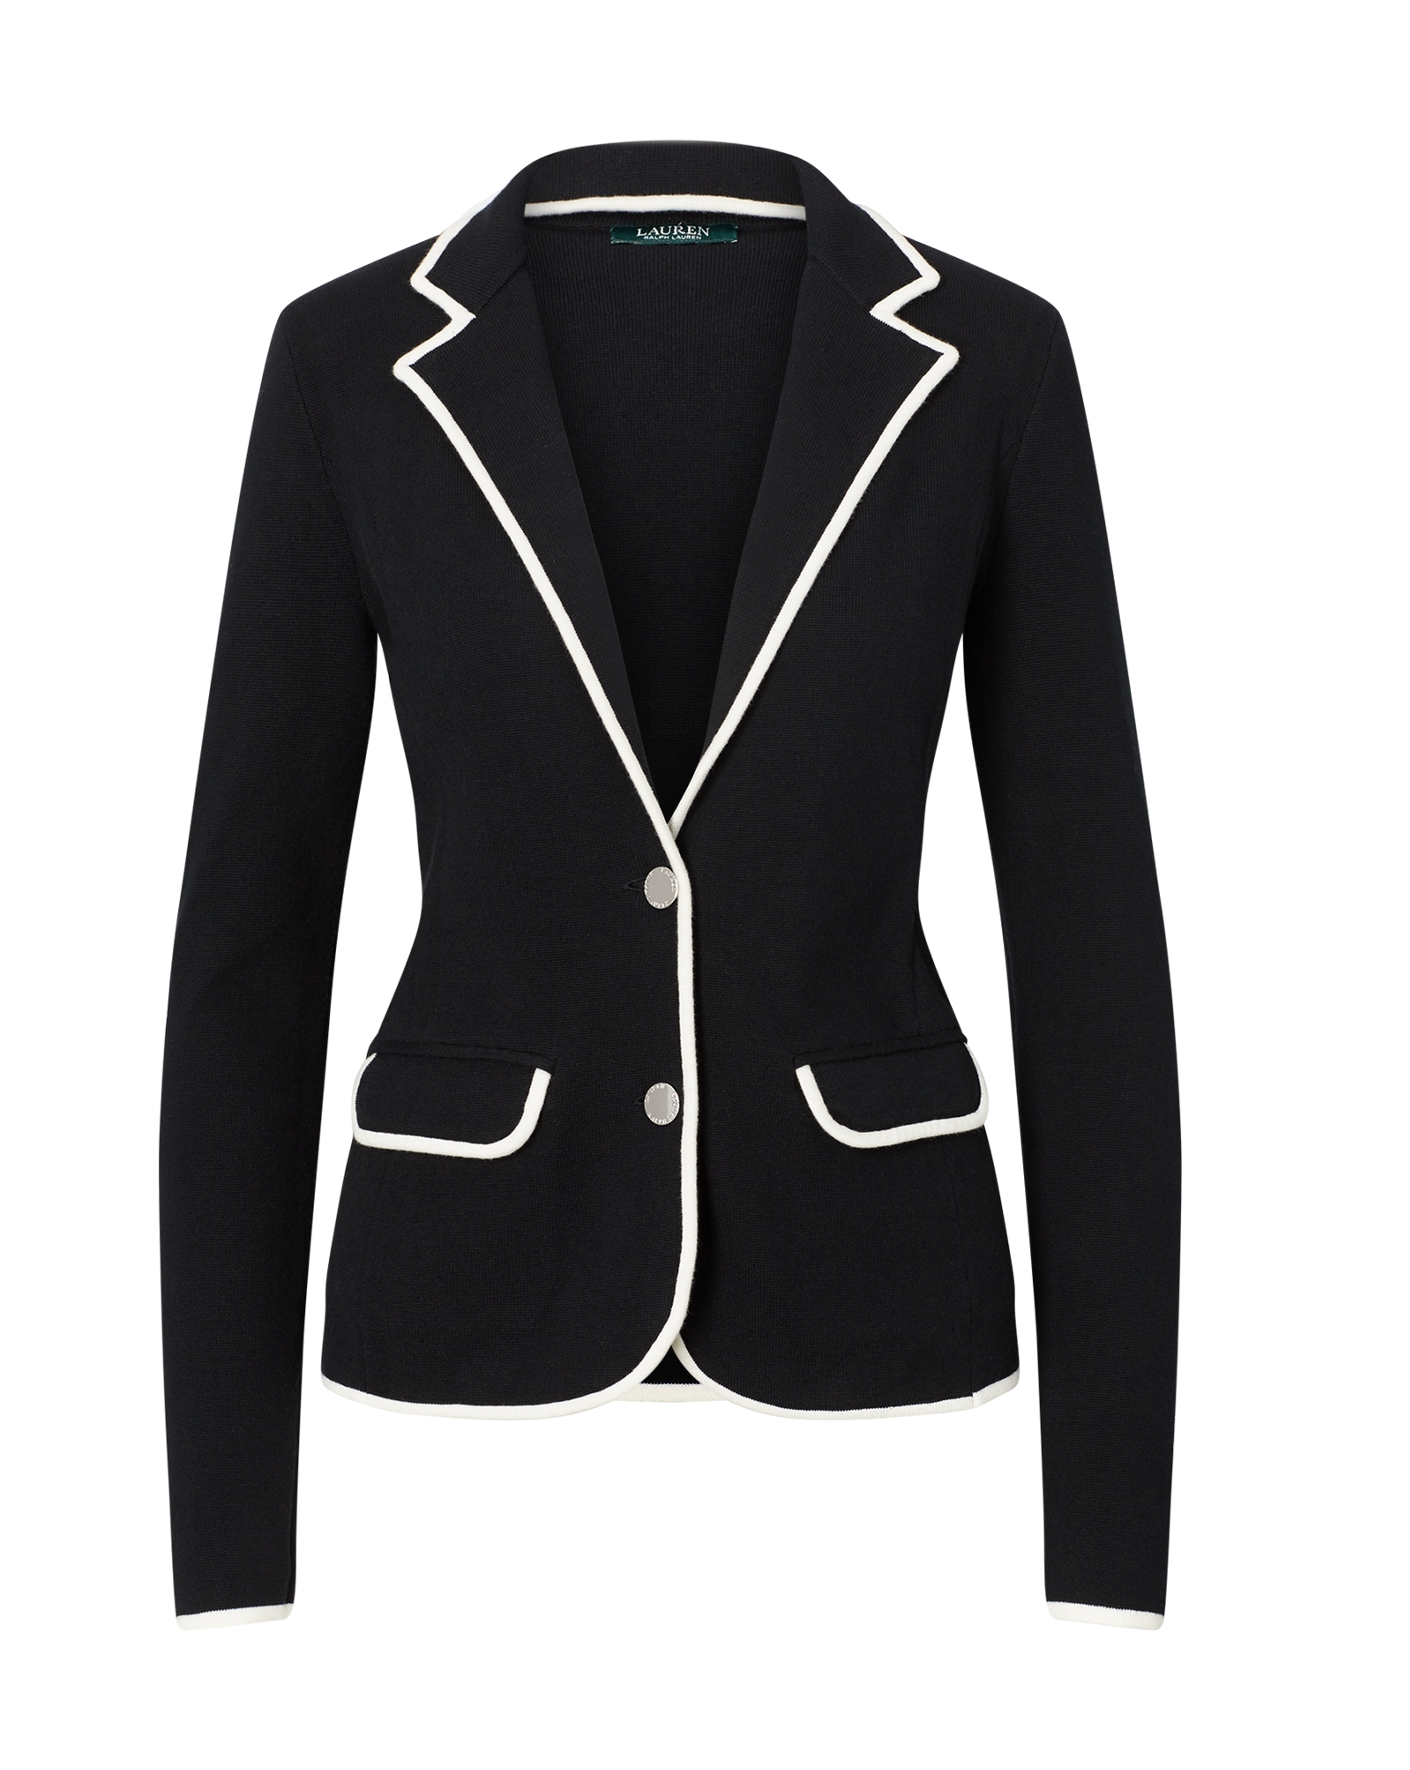 Women's Jackets and Blazers | Lauren | Ralph Lauren